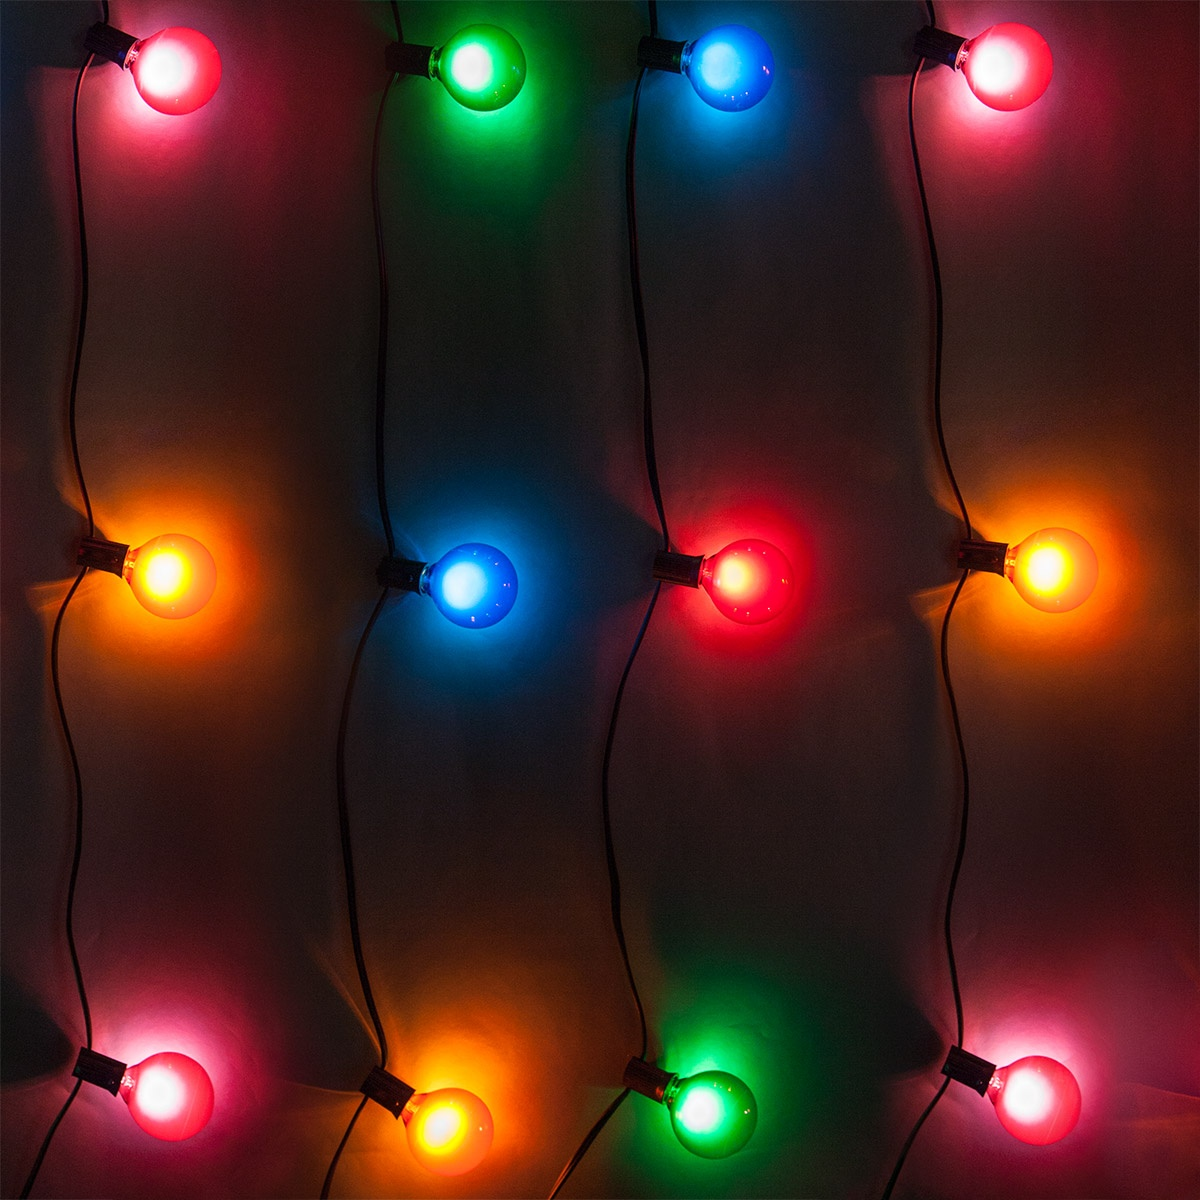 50u0027 Outdoor Patio String With 33 G50 Multicolor Party Lights